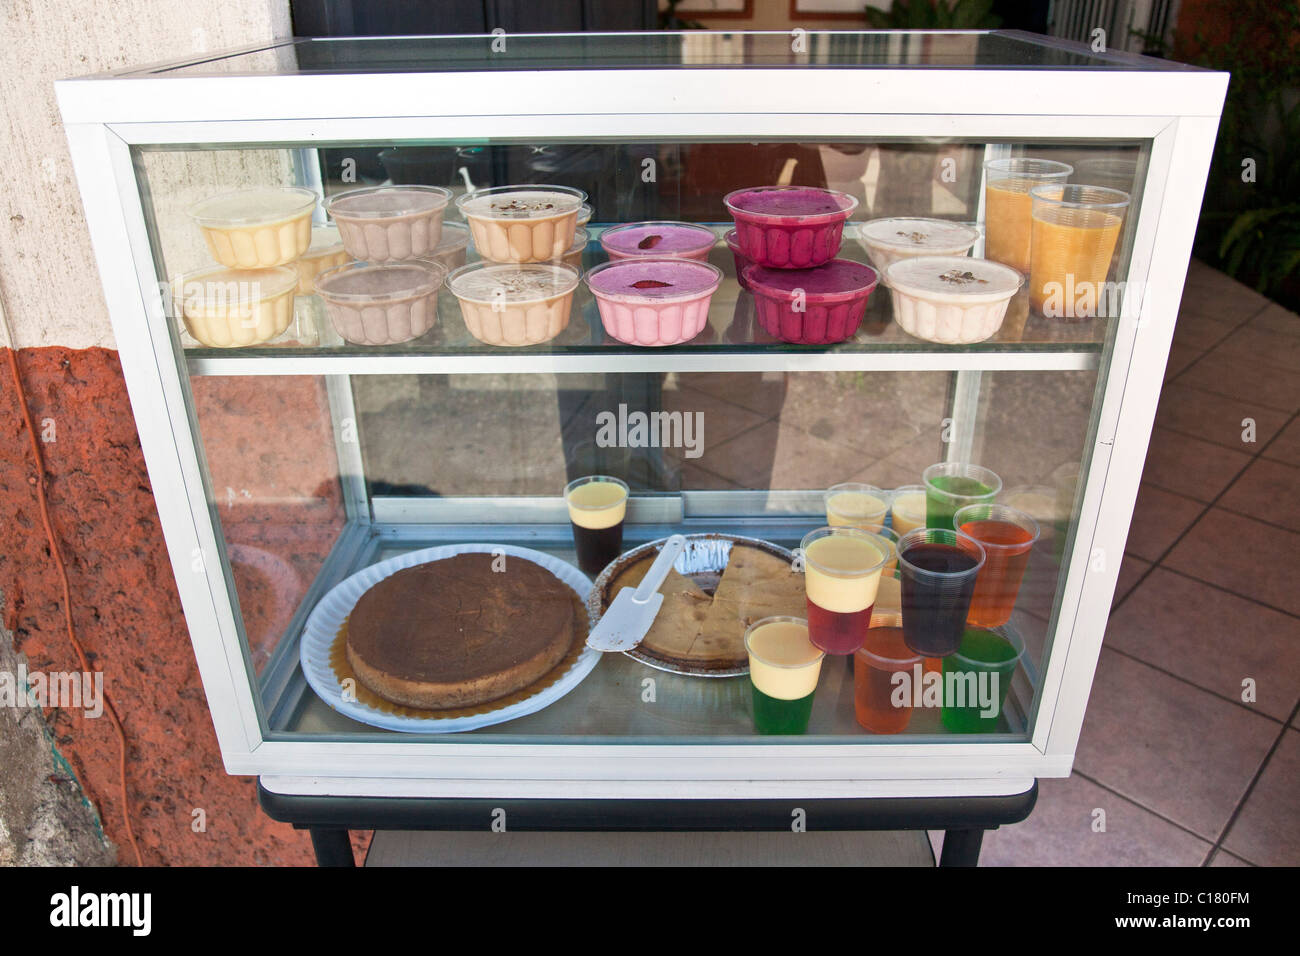 array of delicious delicately colored gelatin desserts in display case in open doorway on street Oaxaca Mexico - Stock Image